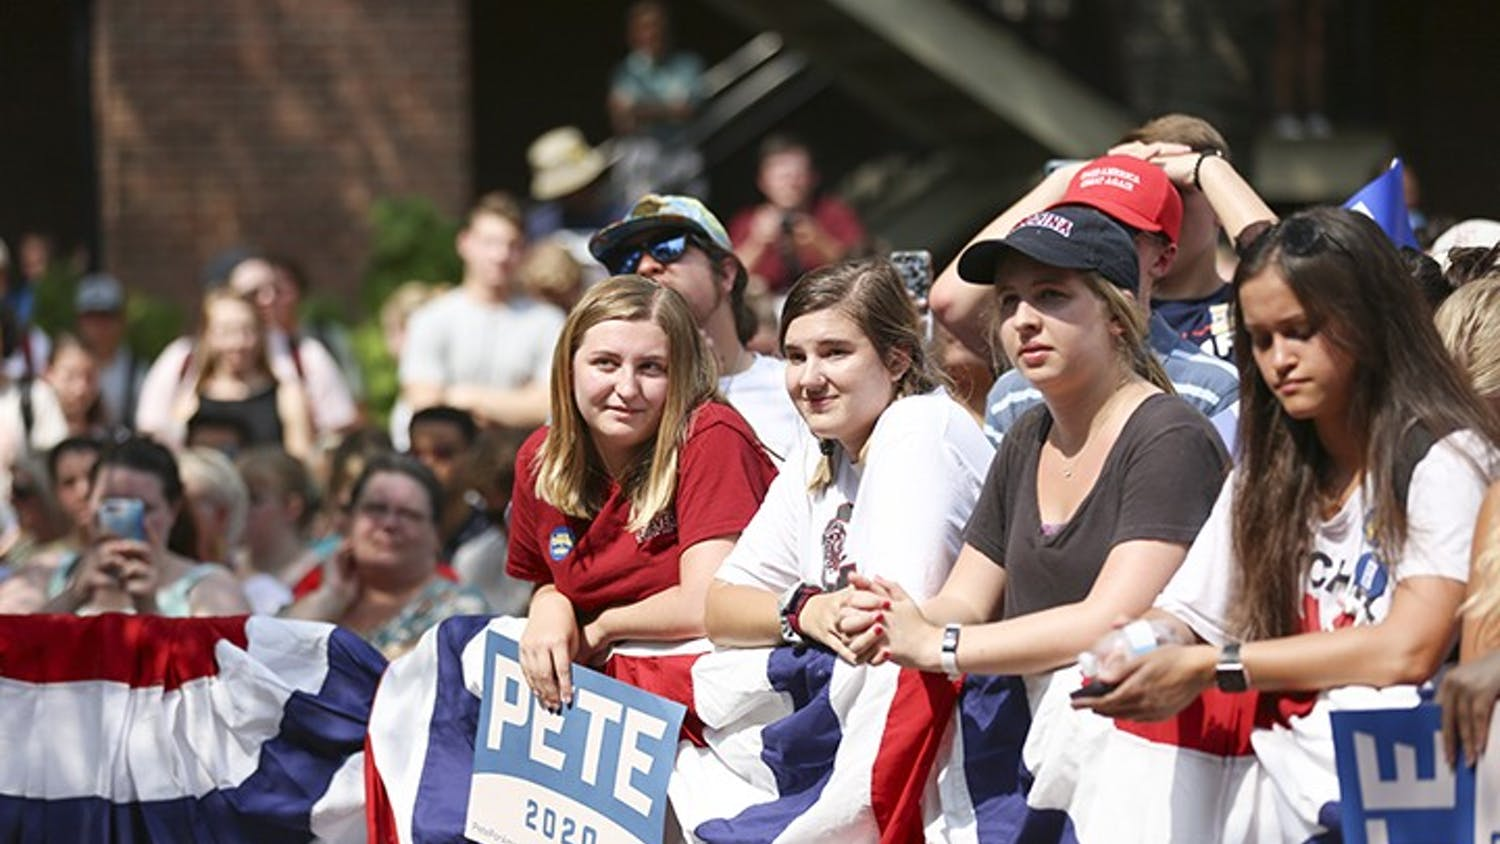 Students listen as democratic presidential candidate Pete Buttigieg speaks at Russell House on Tuesday afternoon.